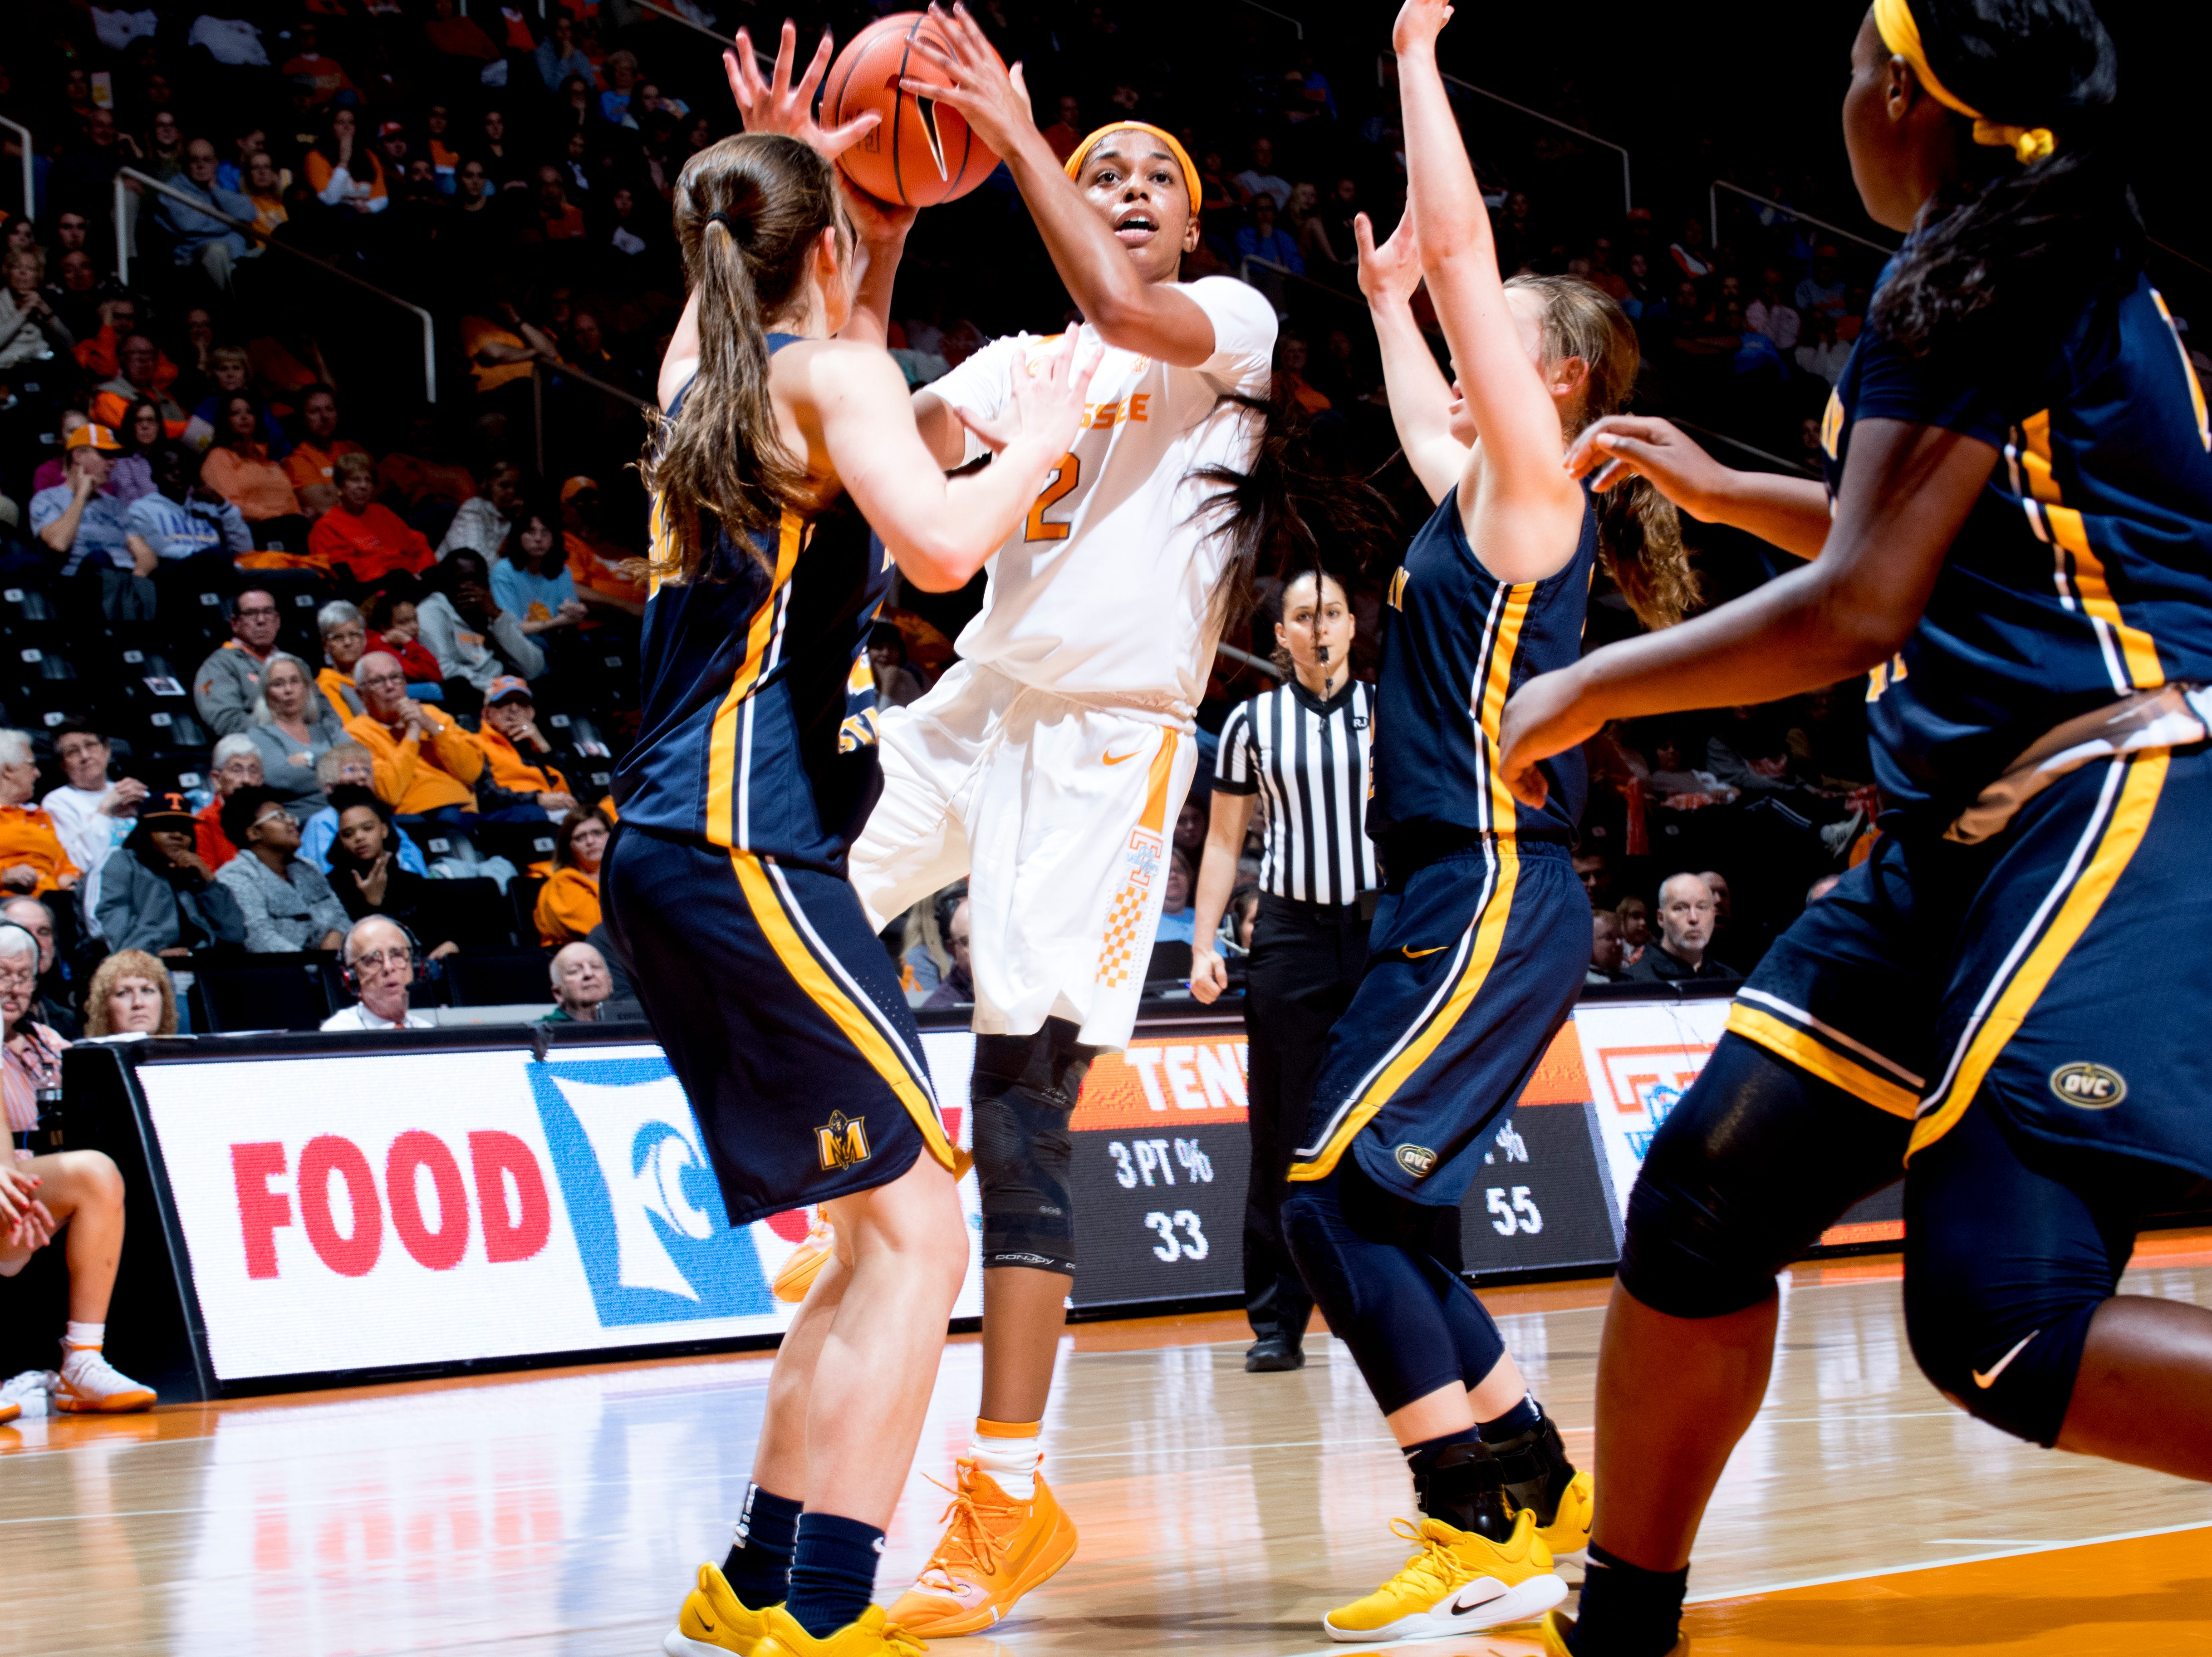 Tennessee guard Evina Westbrook (2) shoots past the Murray State defense during a game between the Tennessee Lady Vols and Murray State at Thompson-Boling Arena in Knoxville, Tennessee on Friday, December 28, 2018.